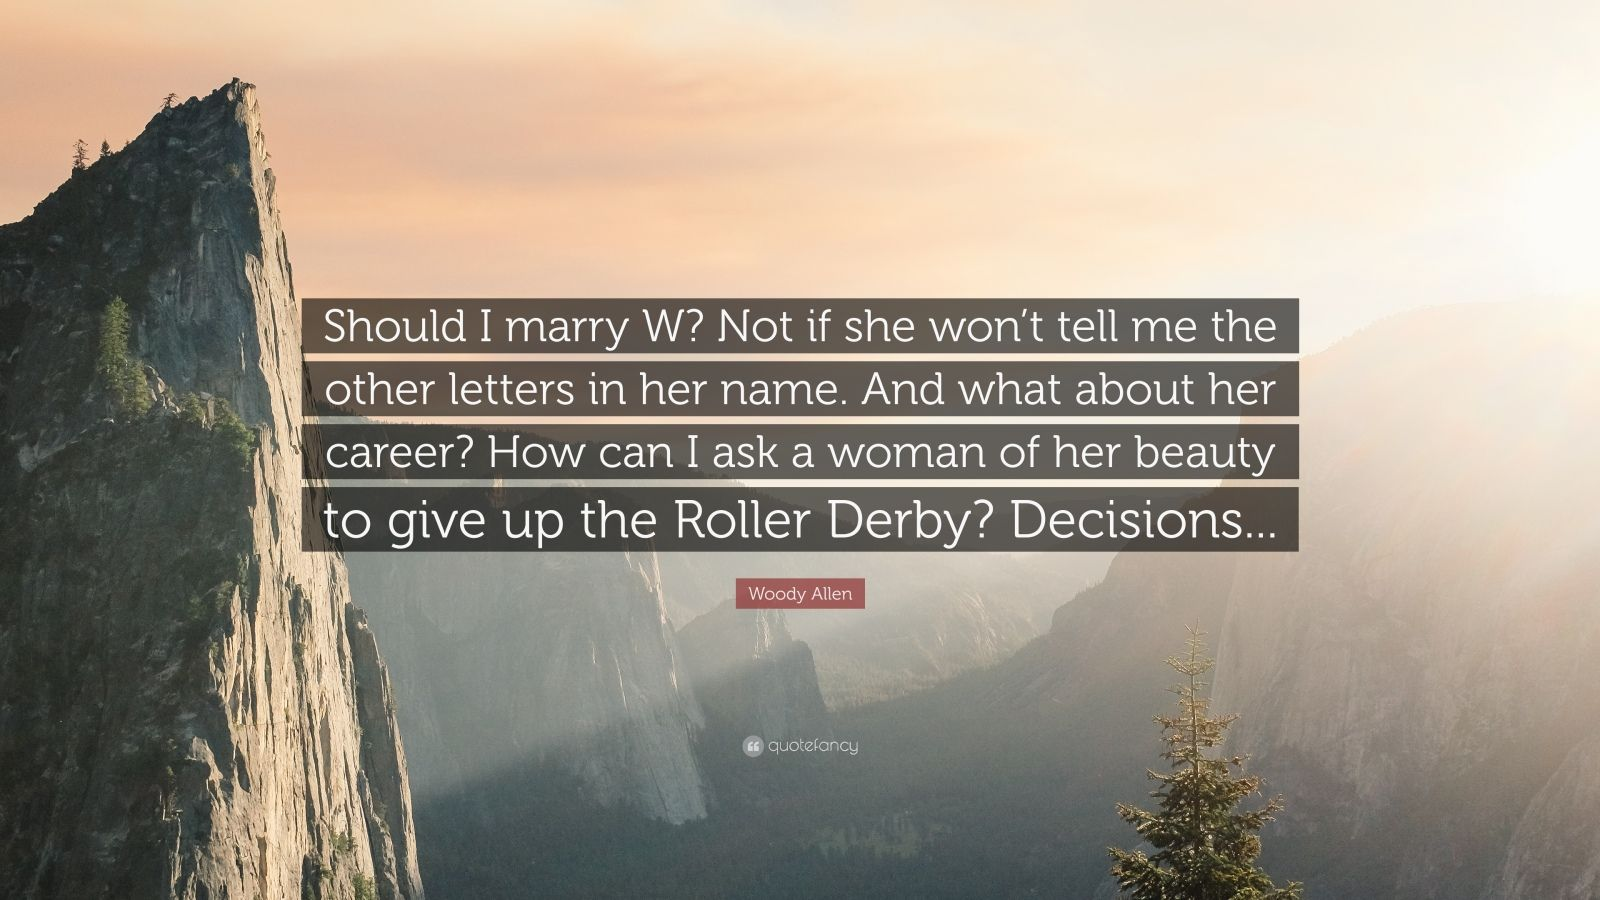 "Woody Allen Quote: ""Should I marry W? Not if she won't tell me the other letters in her name. And what about her career? How can I ask a woman of her beauty to give up the Roller Derby? Decisions..."""